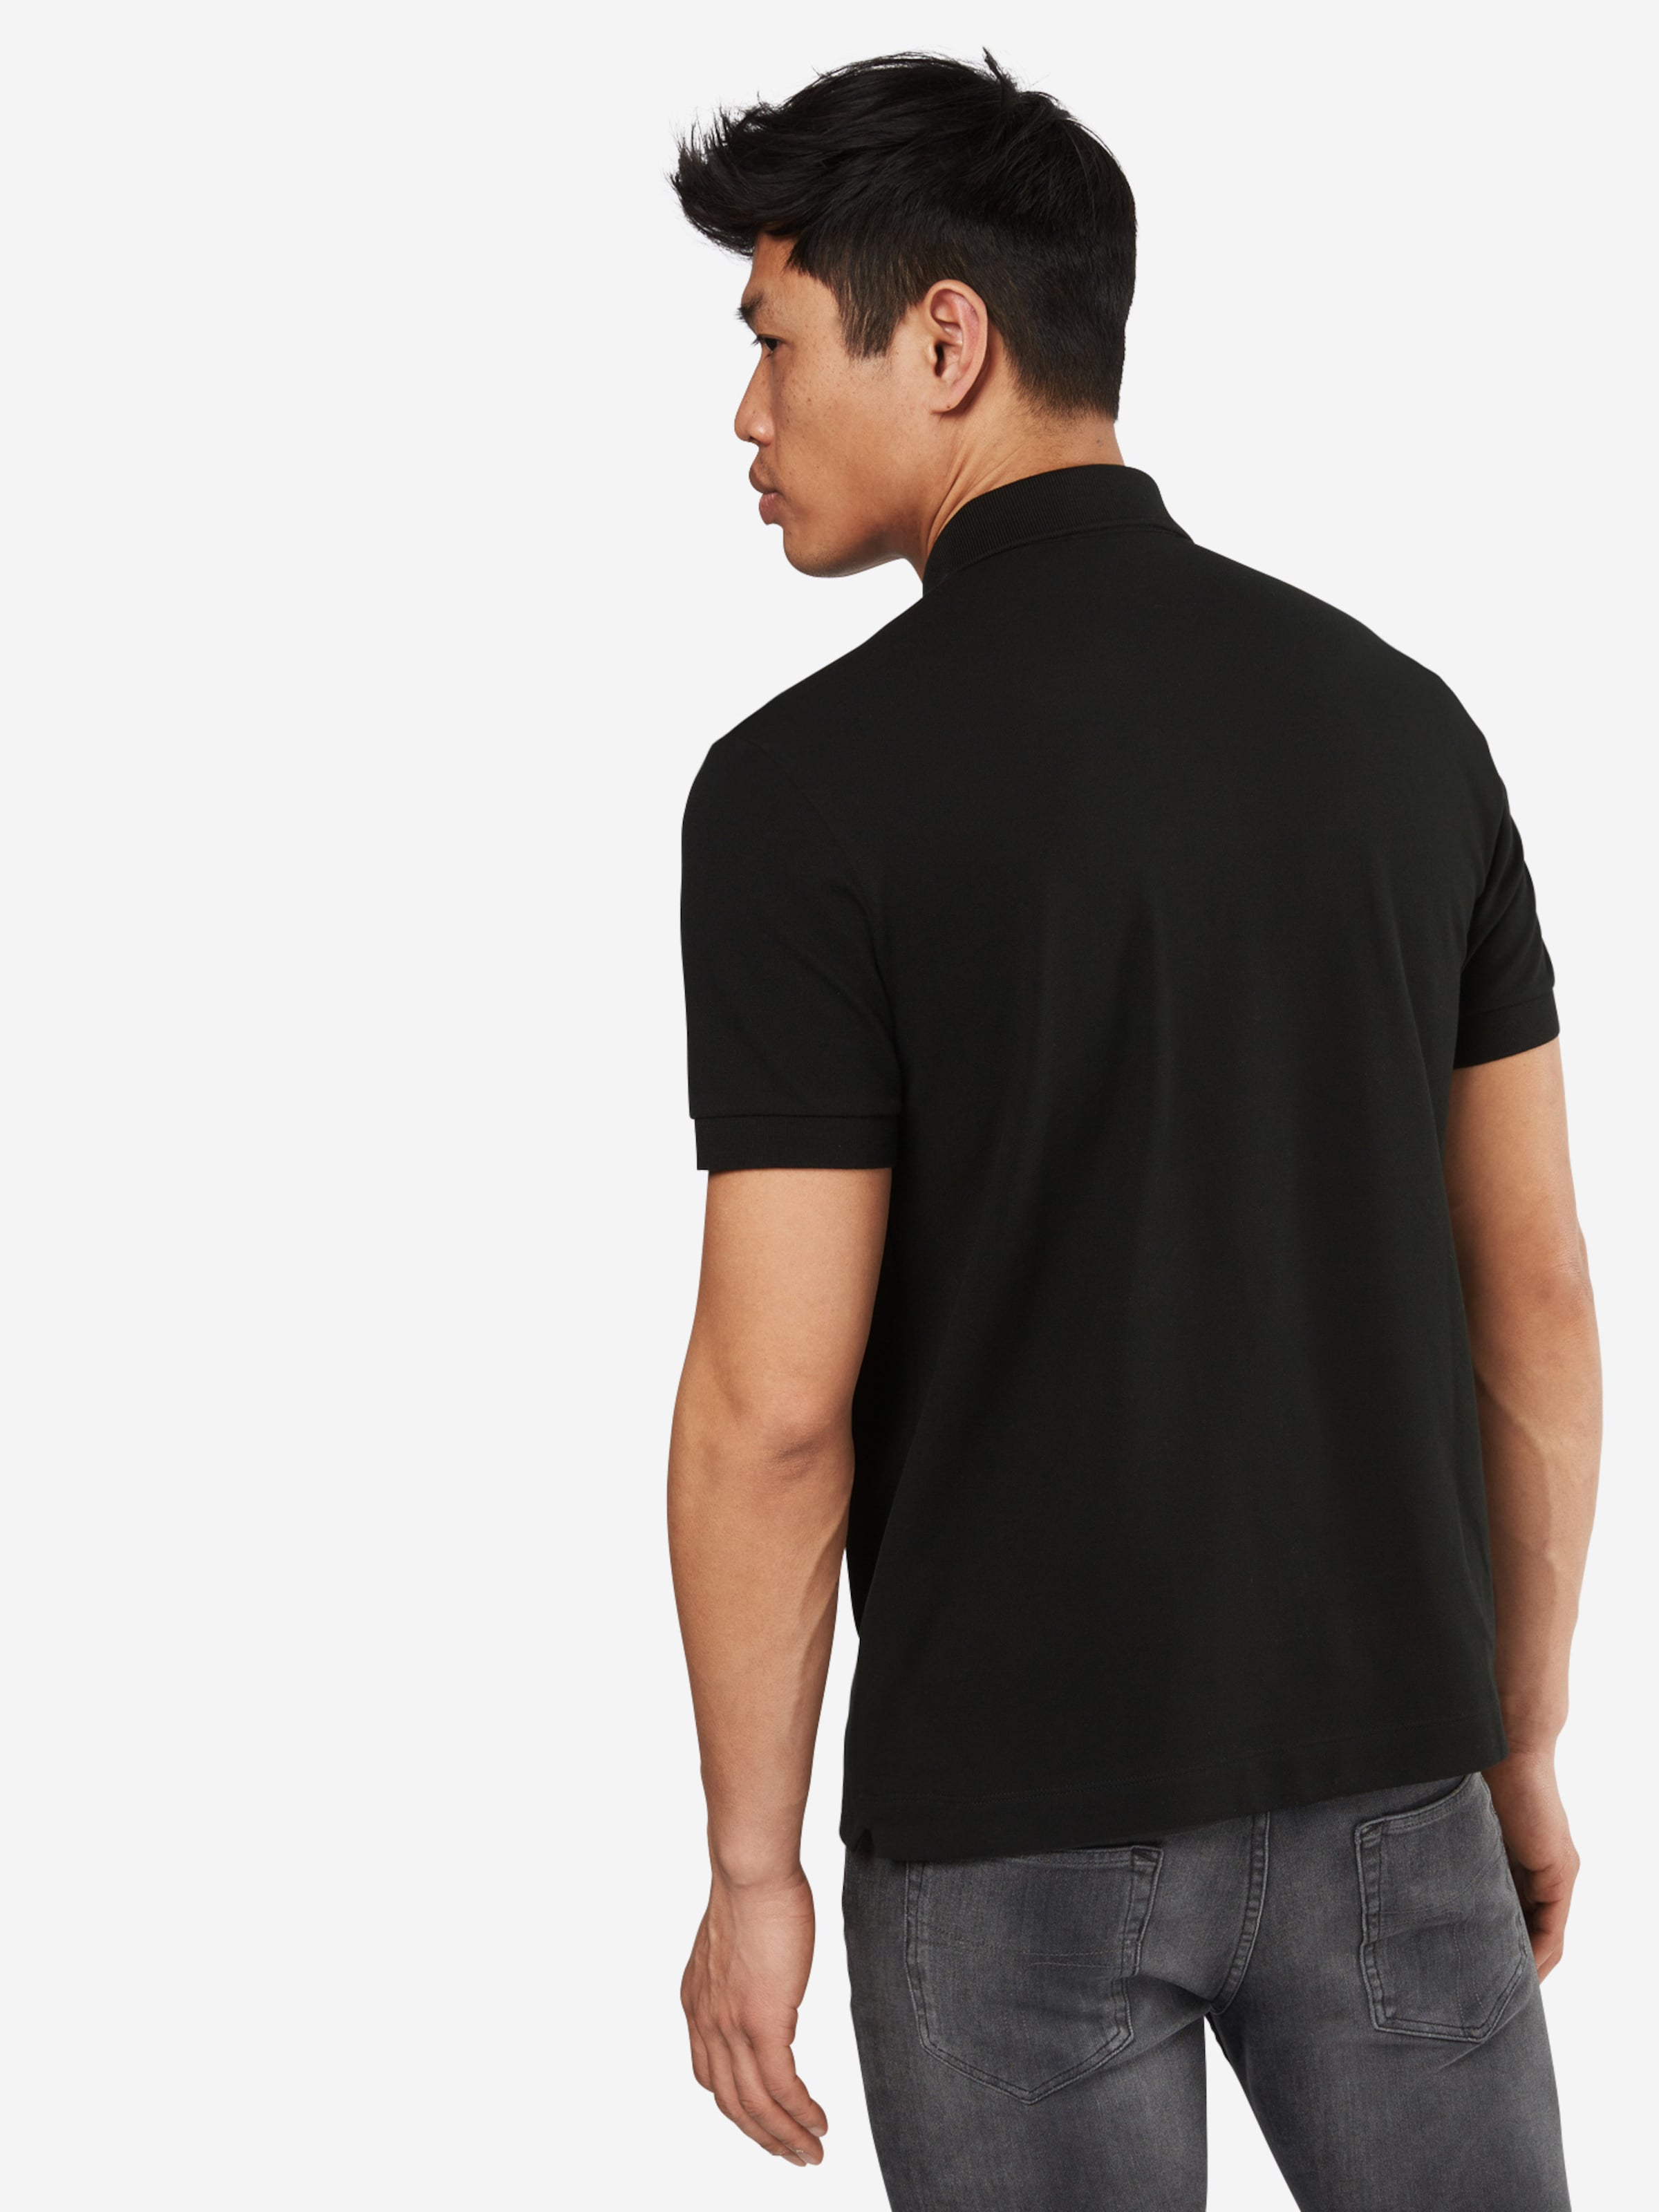 Schwarz Lacoste Lacoste Poloshirt In Poloshirt eH2WED9IY